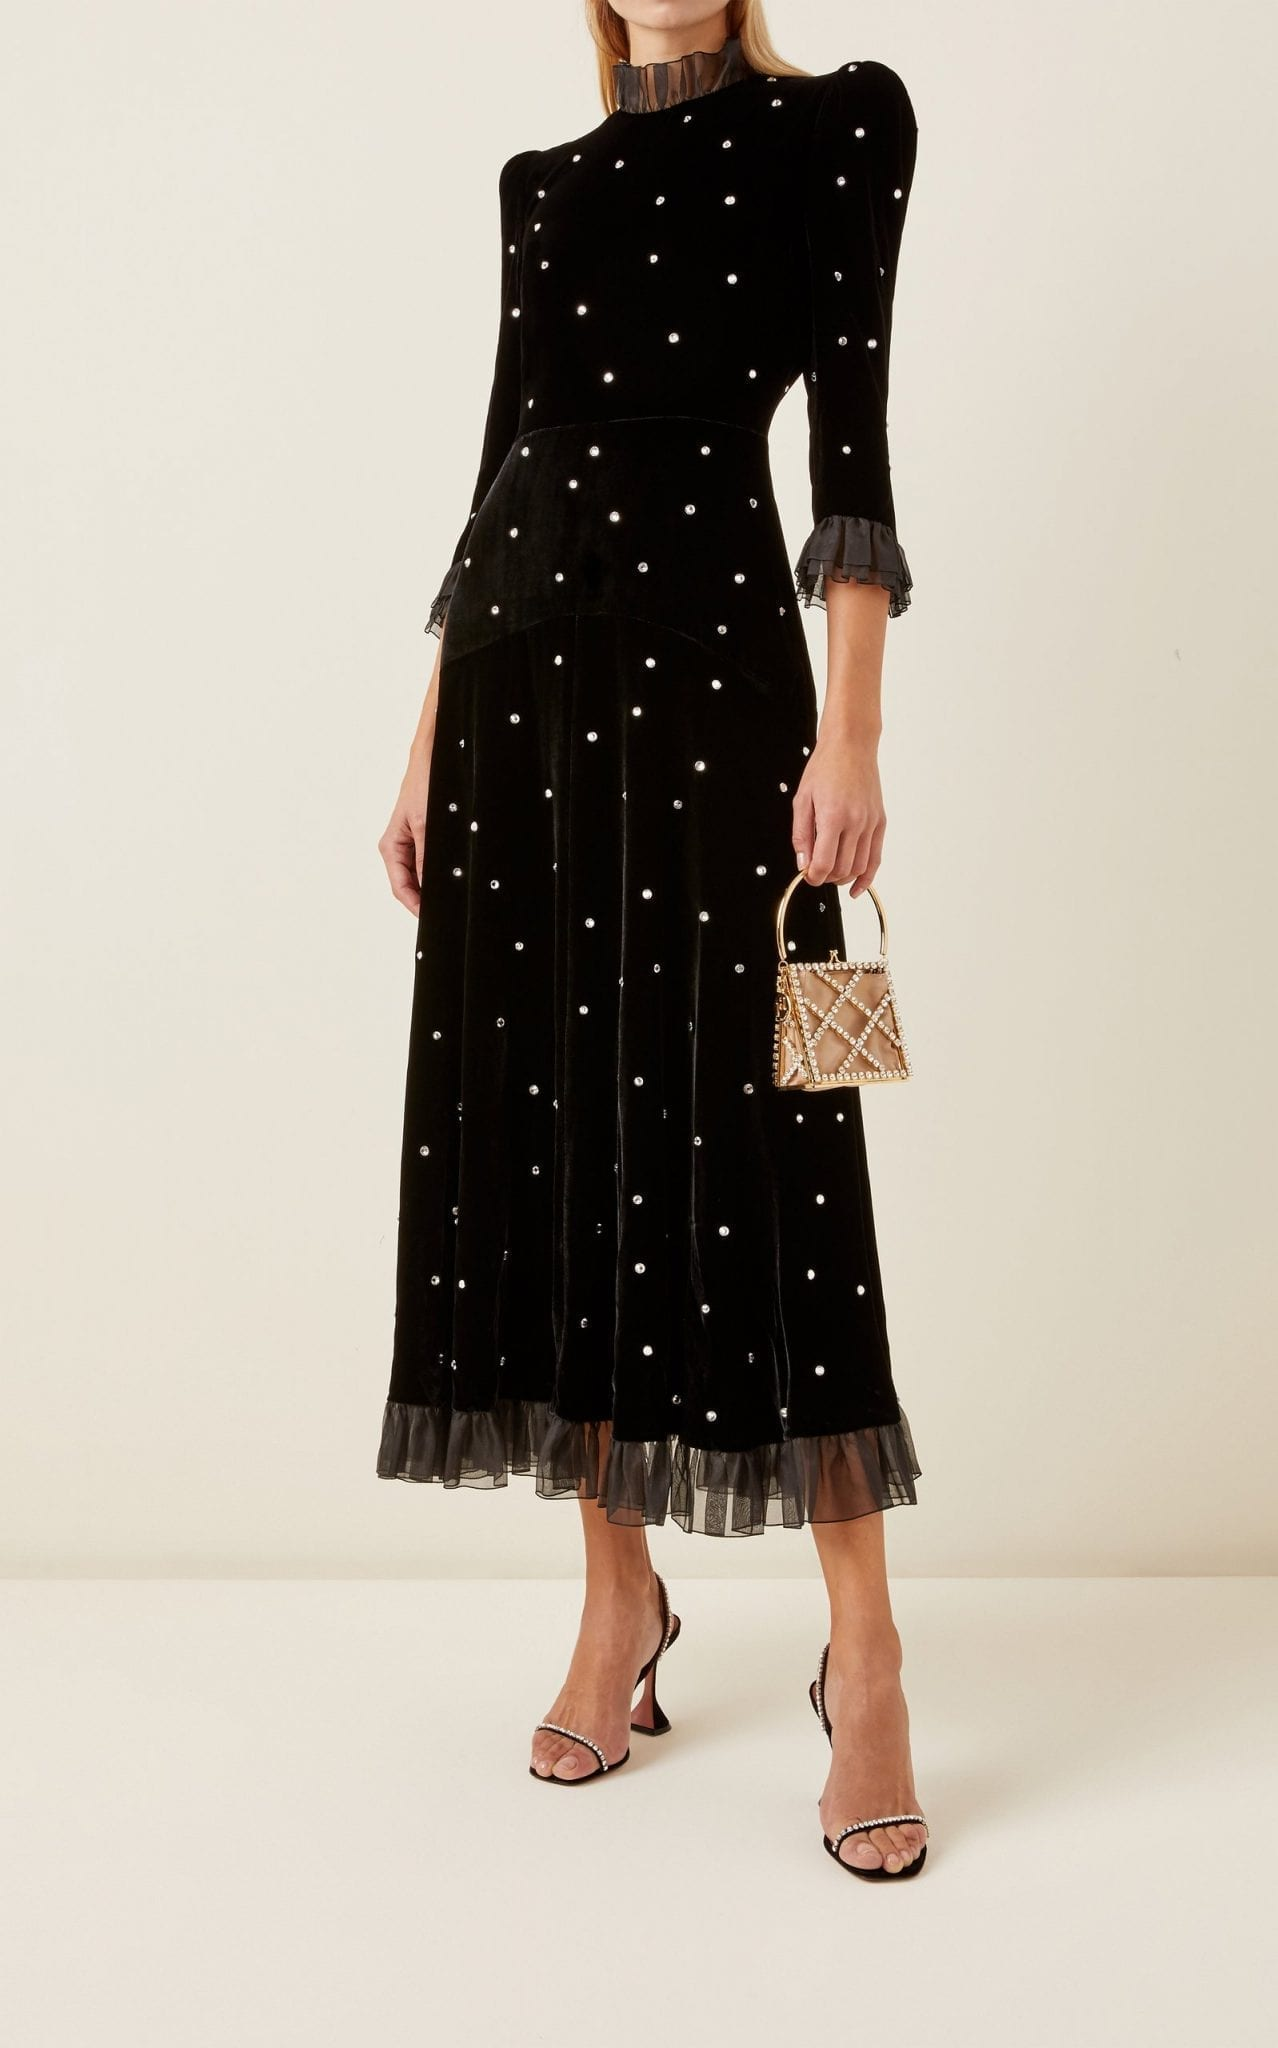 PHILOSOPHY DI LORENZO SERAFINI Organza-Trimmed Crystal-Embellished Velvet Midi Dress